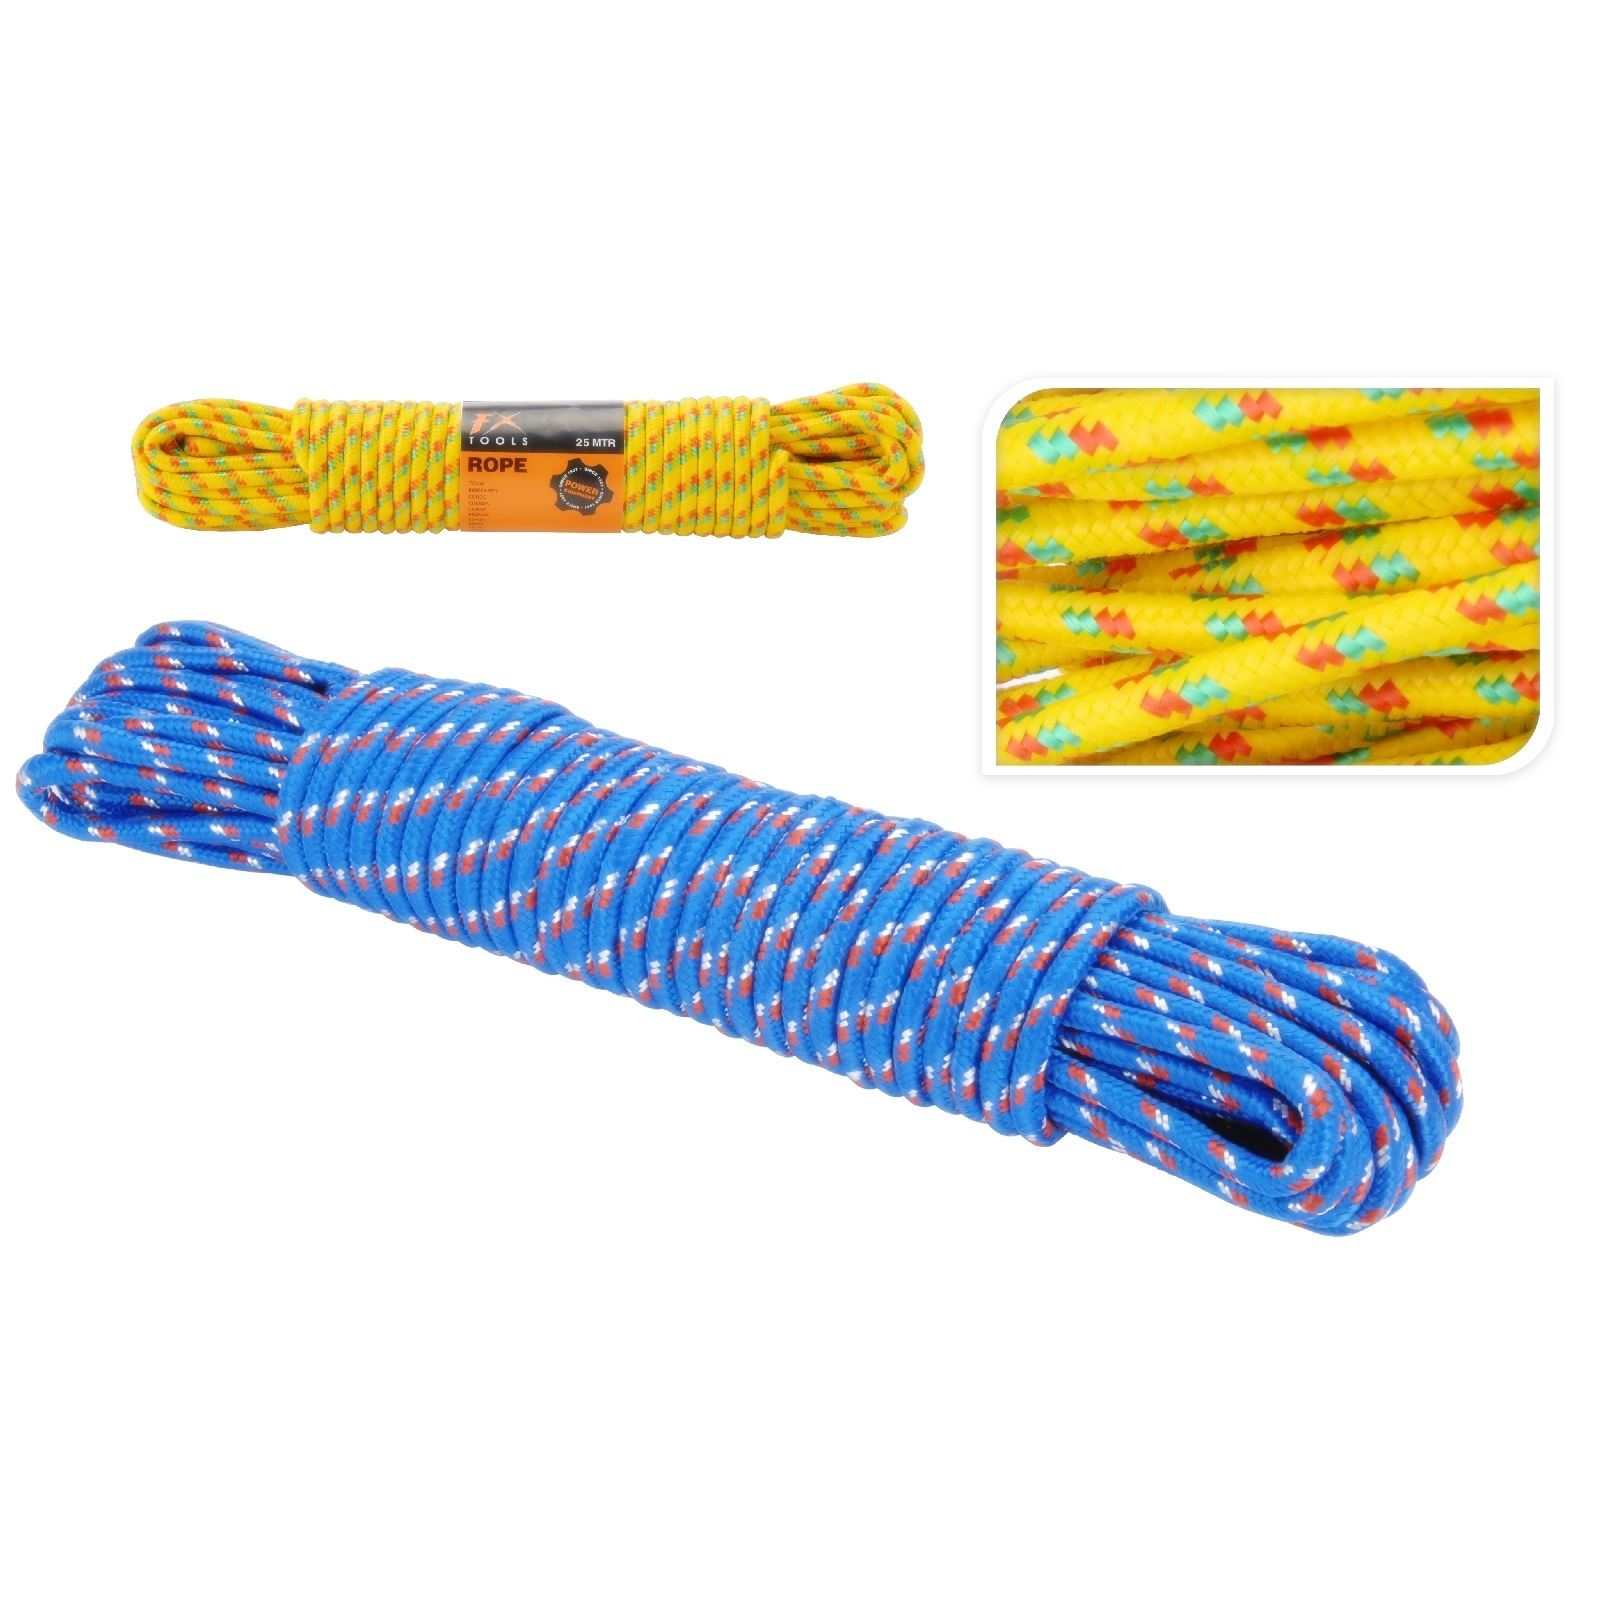 BUY-1-GET-1-FREE-STRONG-POLYPROPYLENE-BRAIDED-ROPE-LINE-25m-8mm-CAMPING-TRAVEL